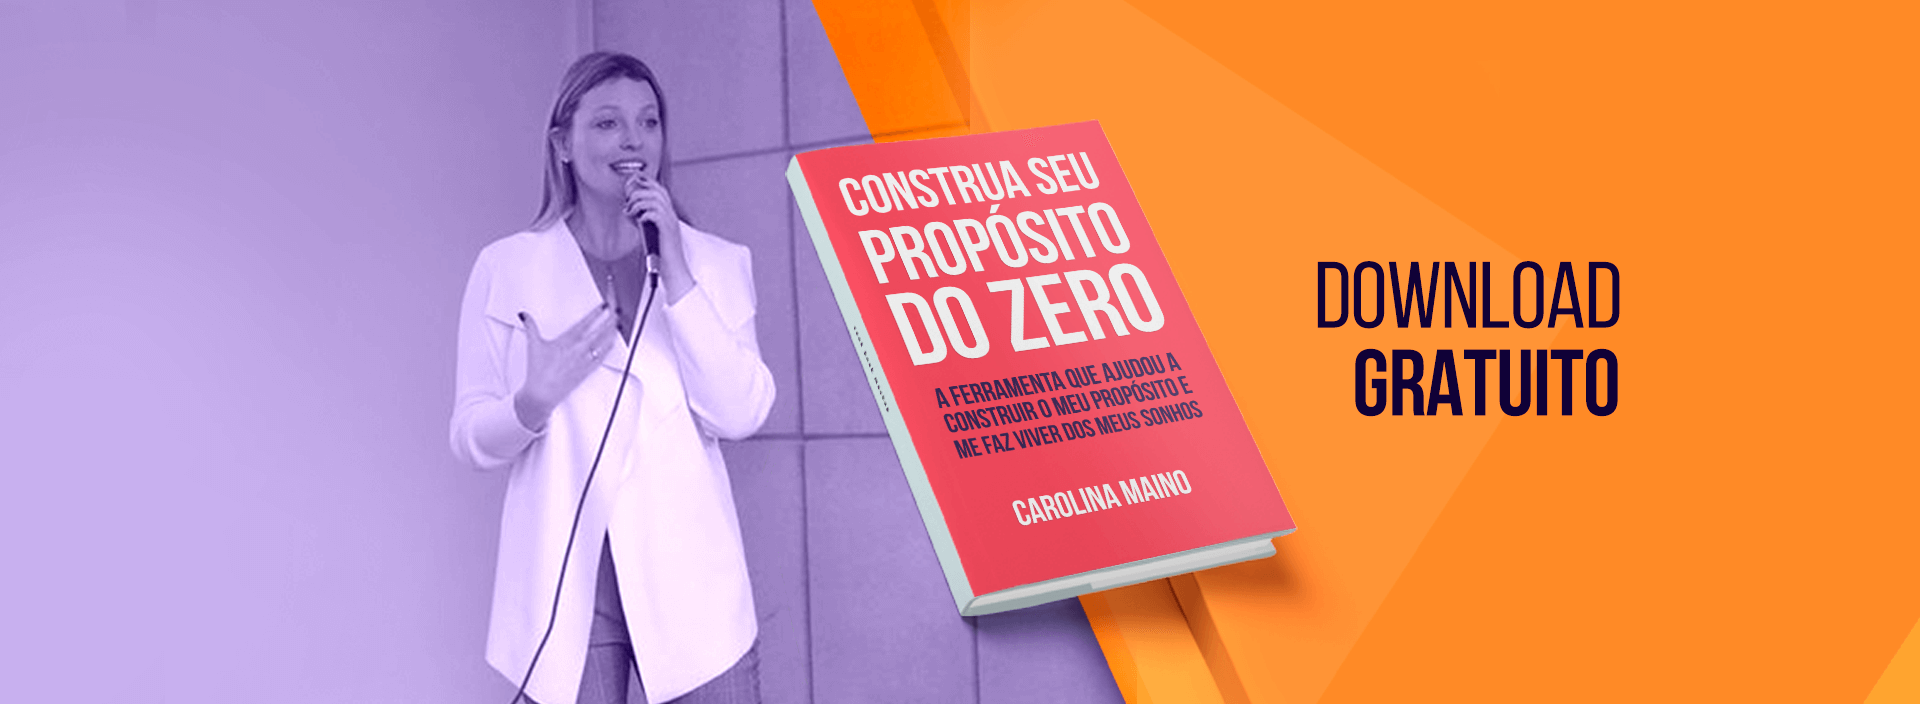 e-book Construa seu propósito do zero